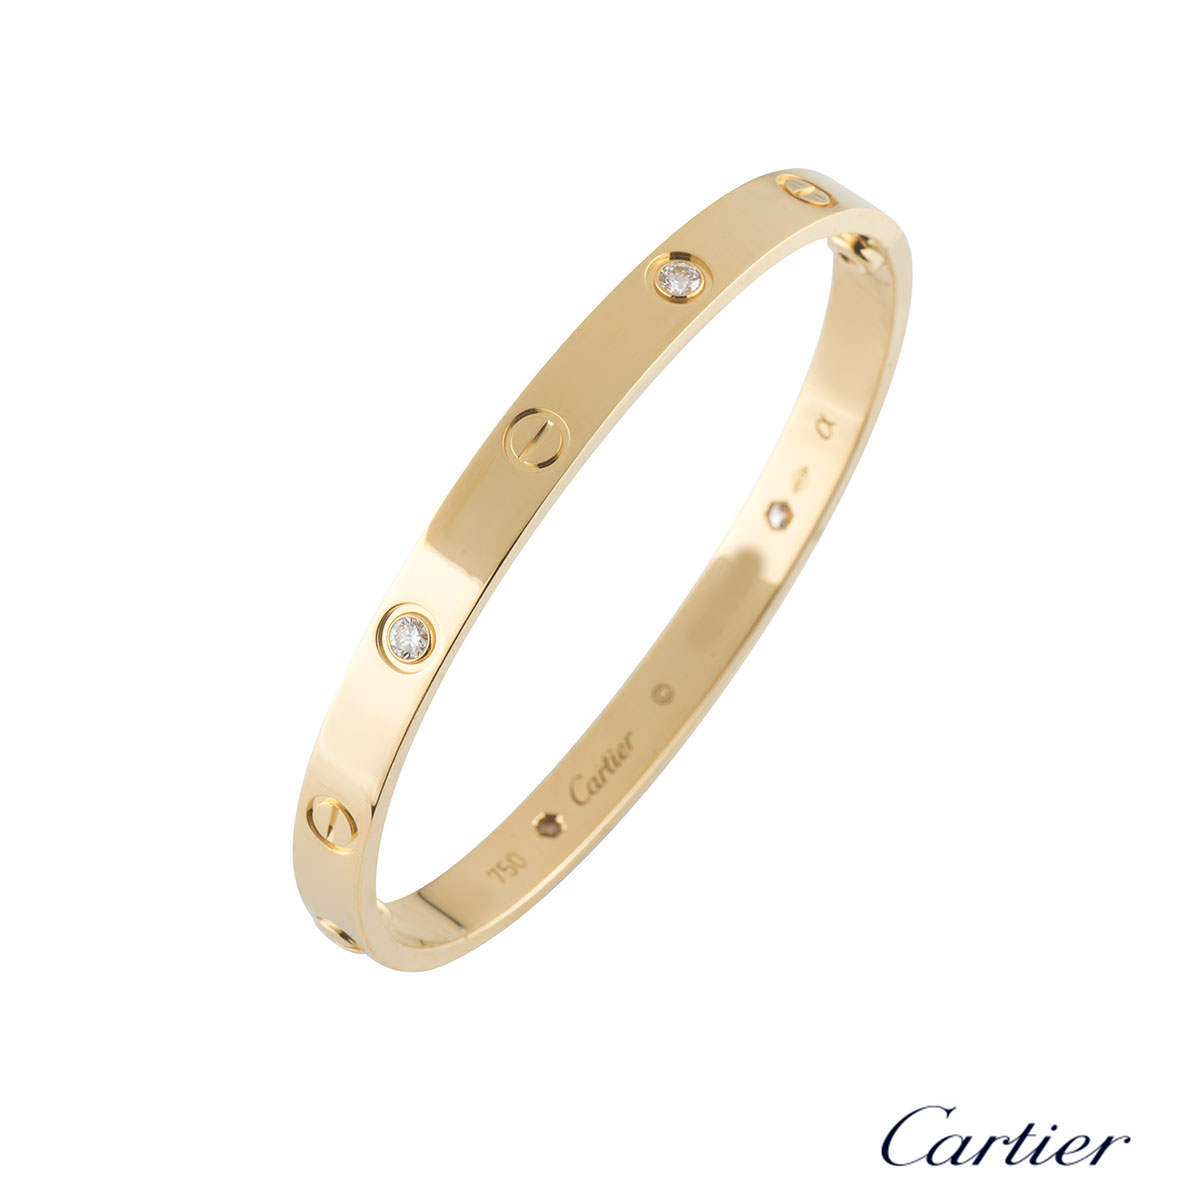 Cartier Yellow Gold Half Diamond Love Bracelet Size 18 B6035918